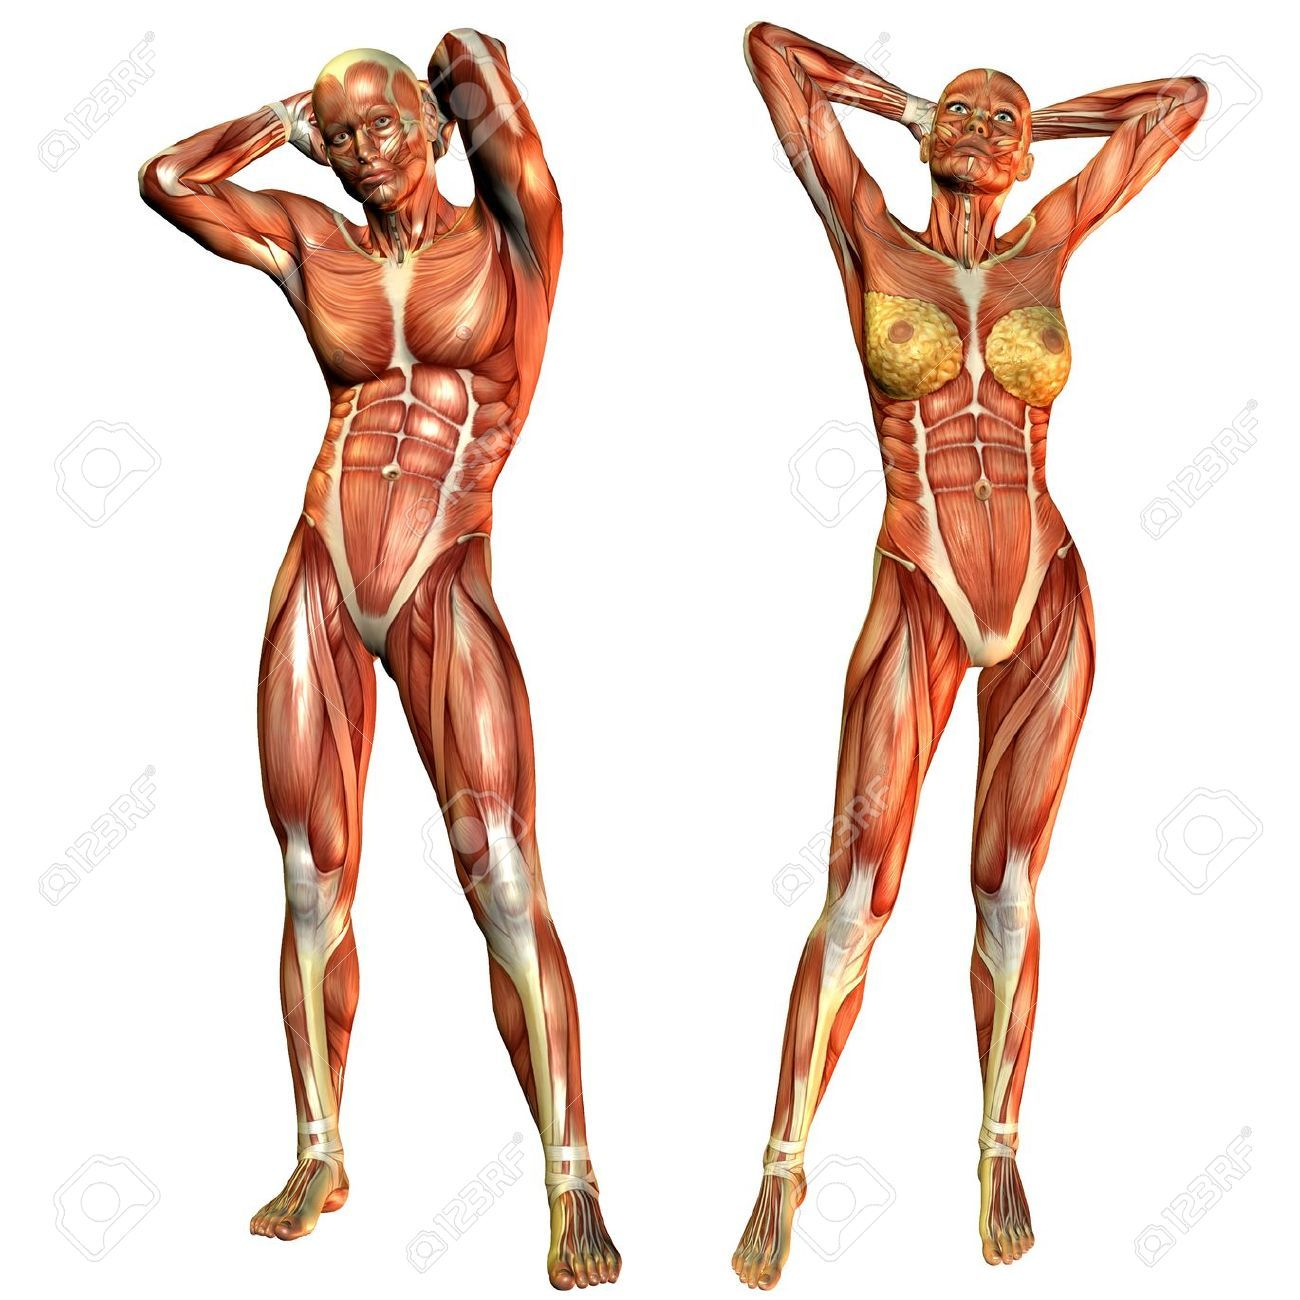 d rendering of the female and male muscle course in a standing, Muscles